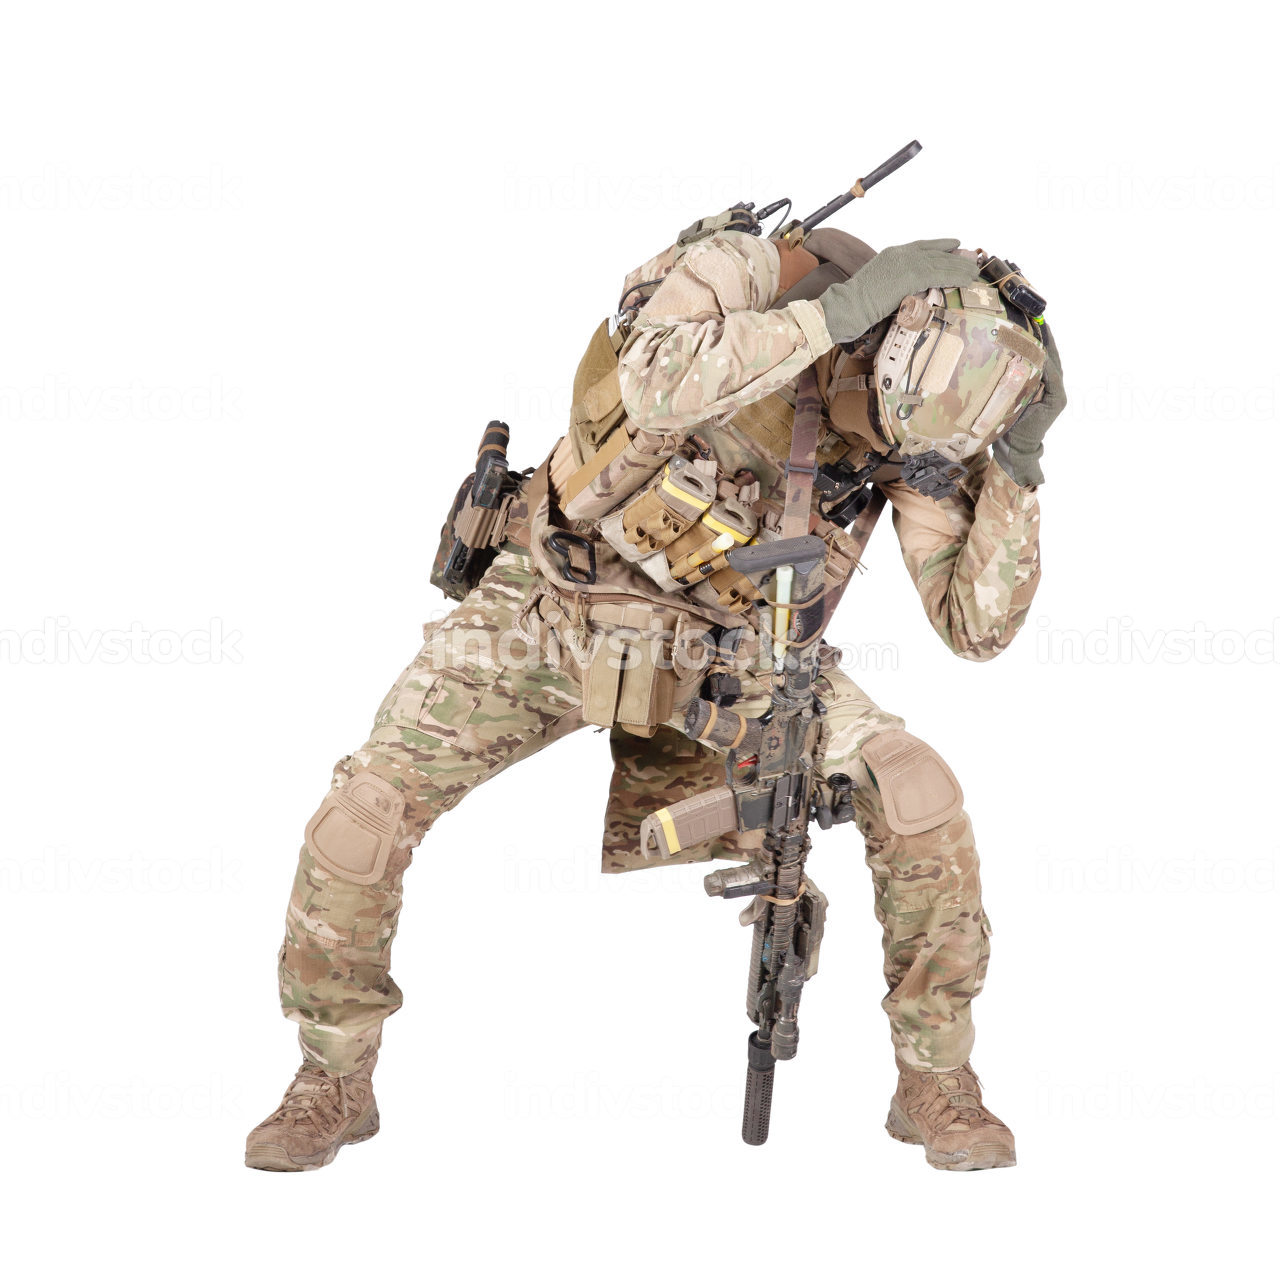 Armed infantryman in camo uniform and helmet embracing head with hands, covering himself from grenade, mine or air bomb explosion, artillery strike danger studio shoot isolated on white background